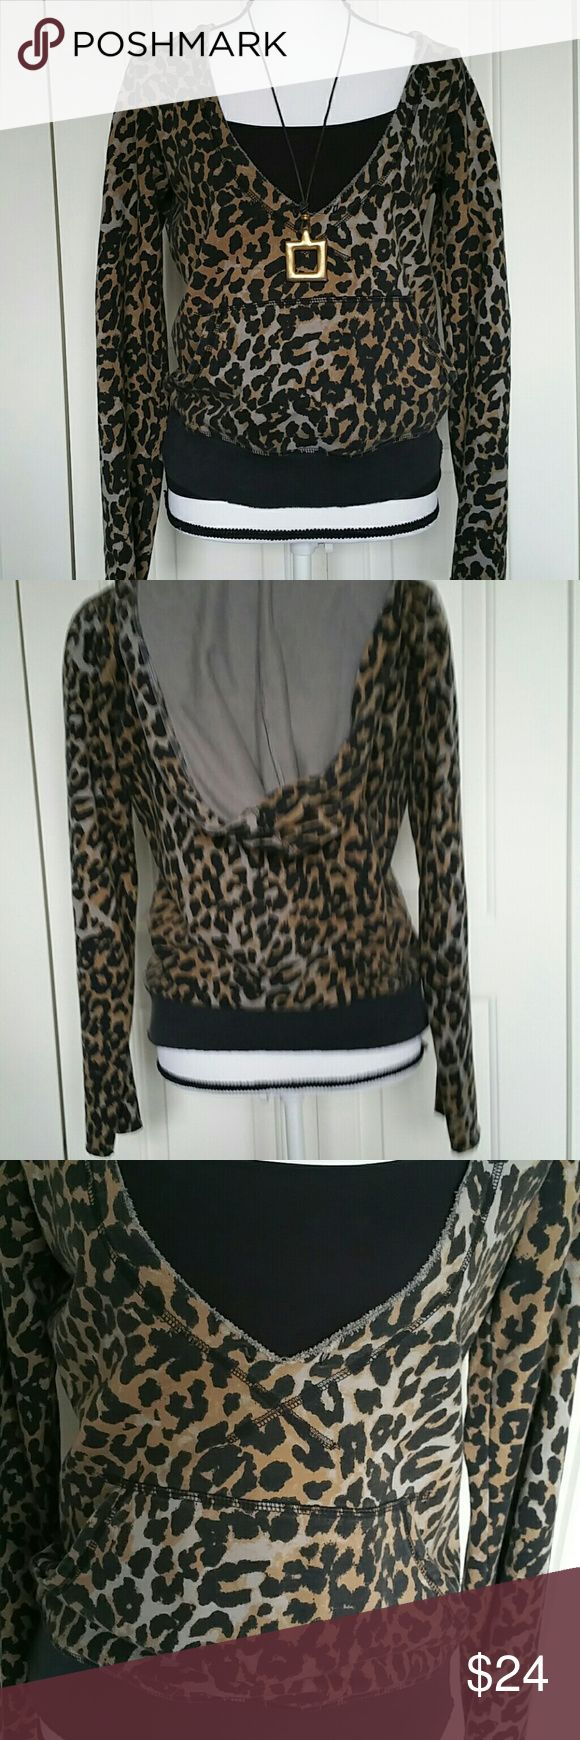 Lucky Brand Animal Print Hoodie Size small In great condition - shown with black Cami (not included) has raw edge detail & kangaroo pockets. Any questions please ask! Lucky Brand Tops Sweatshirts & Hoodies